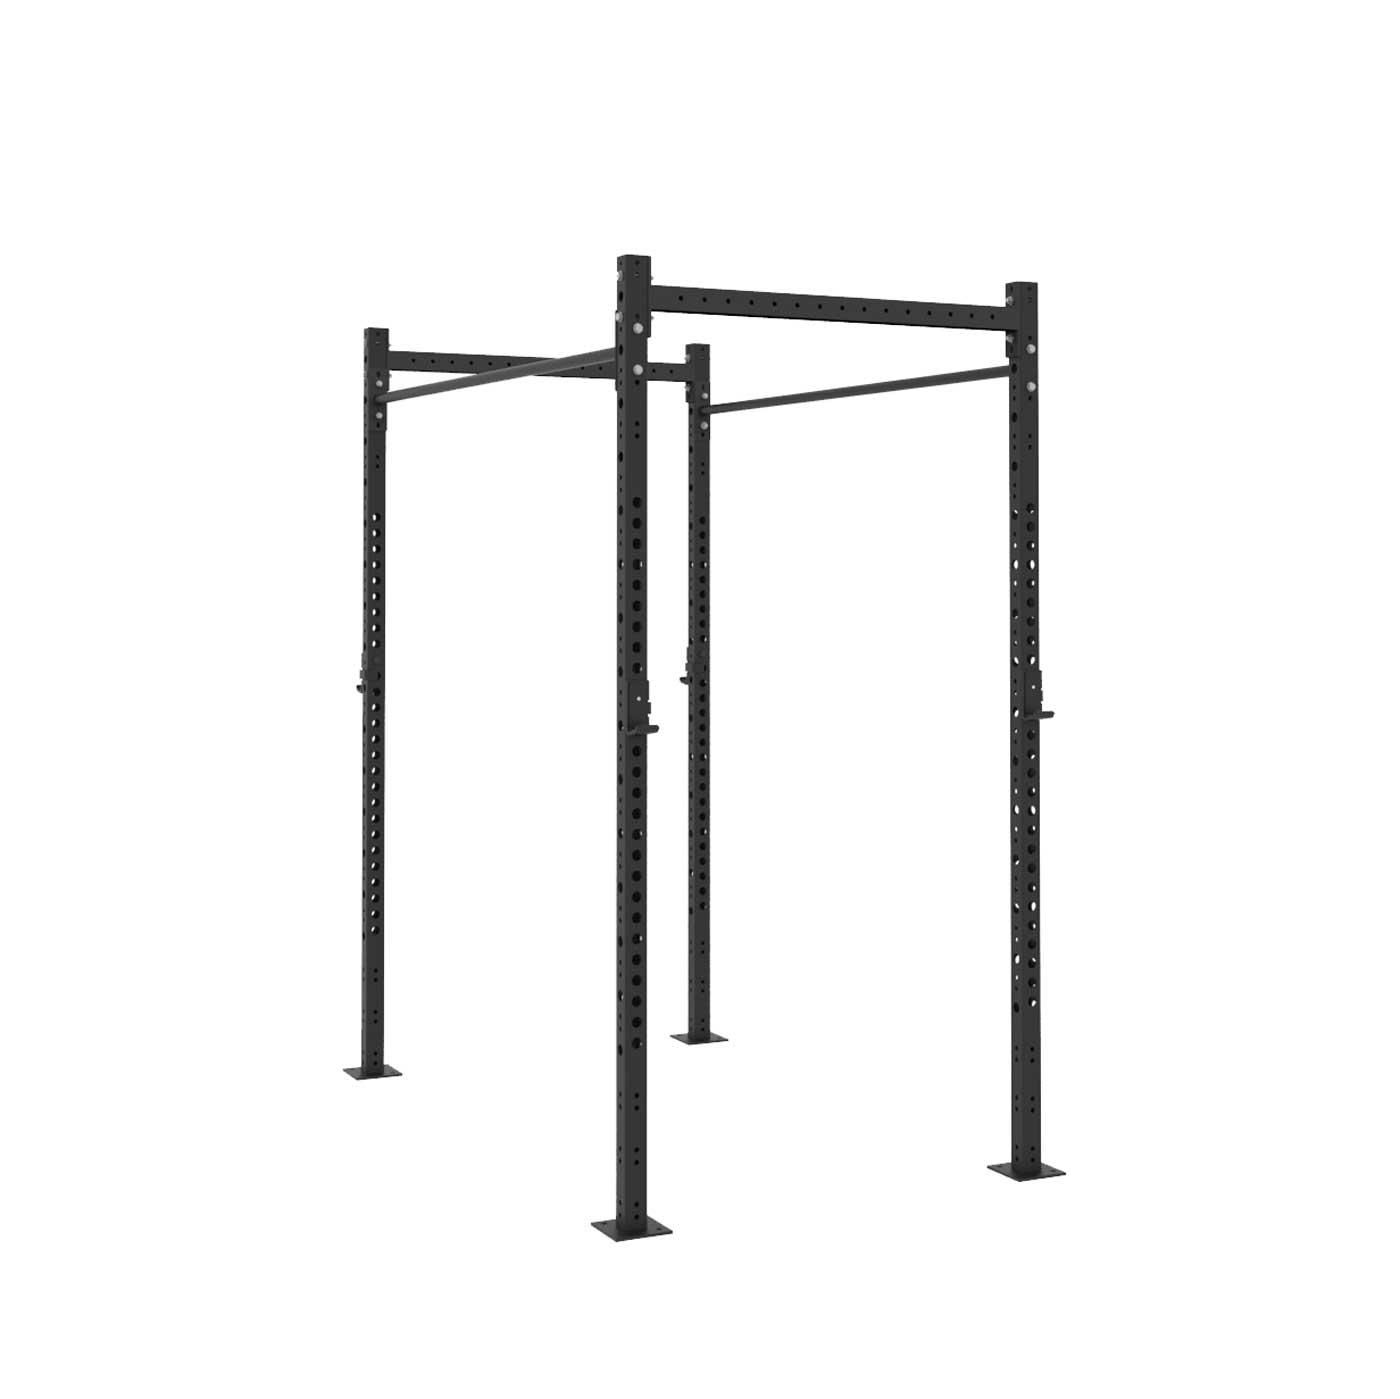 4x6 Partner Rig - Out of Stock